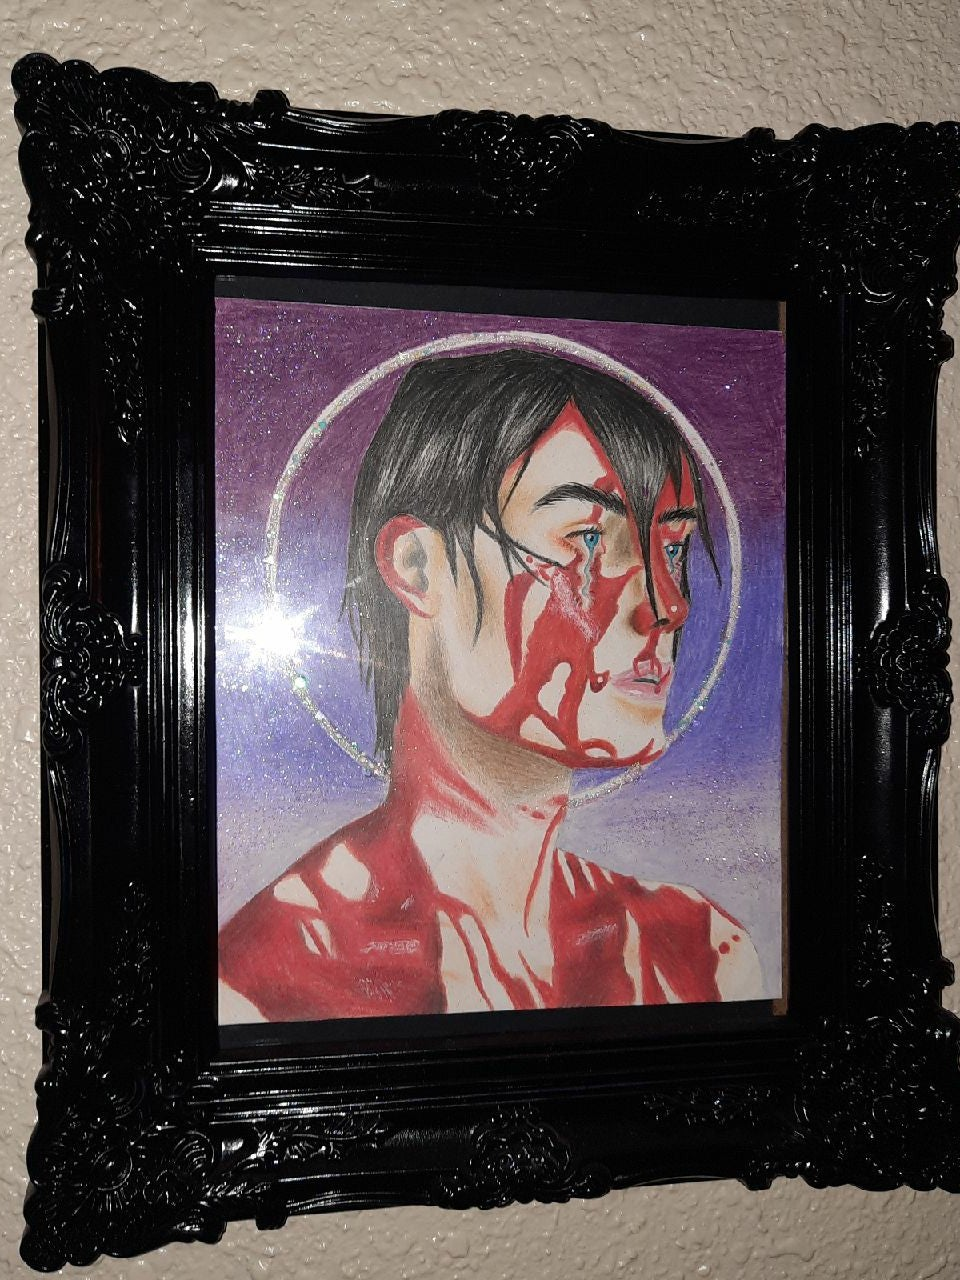 Creepy trippy drawing with frame